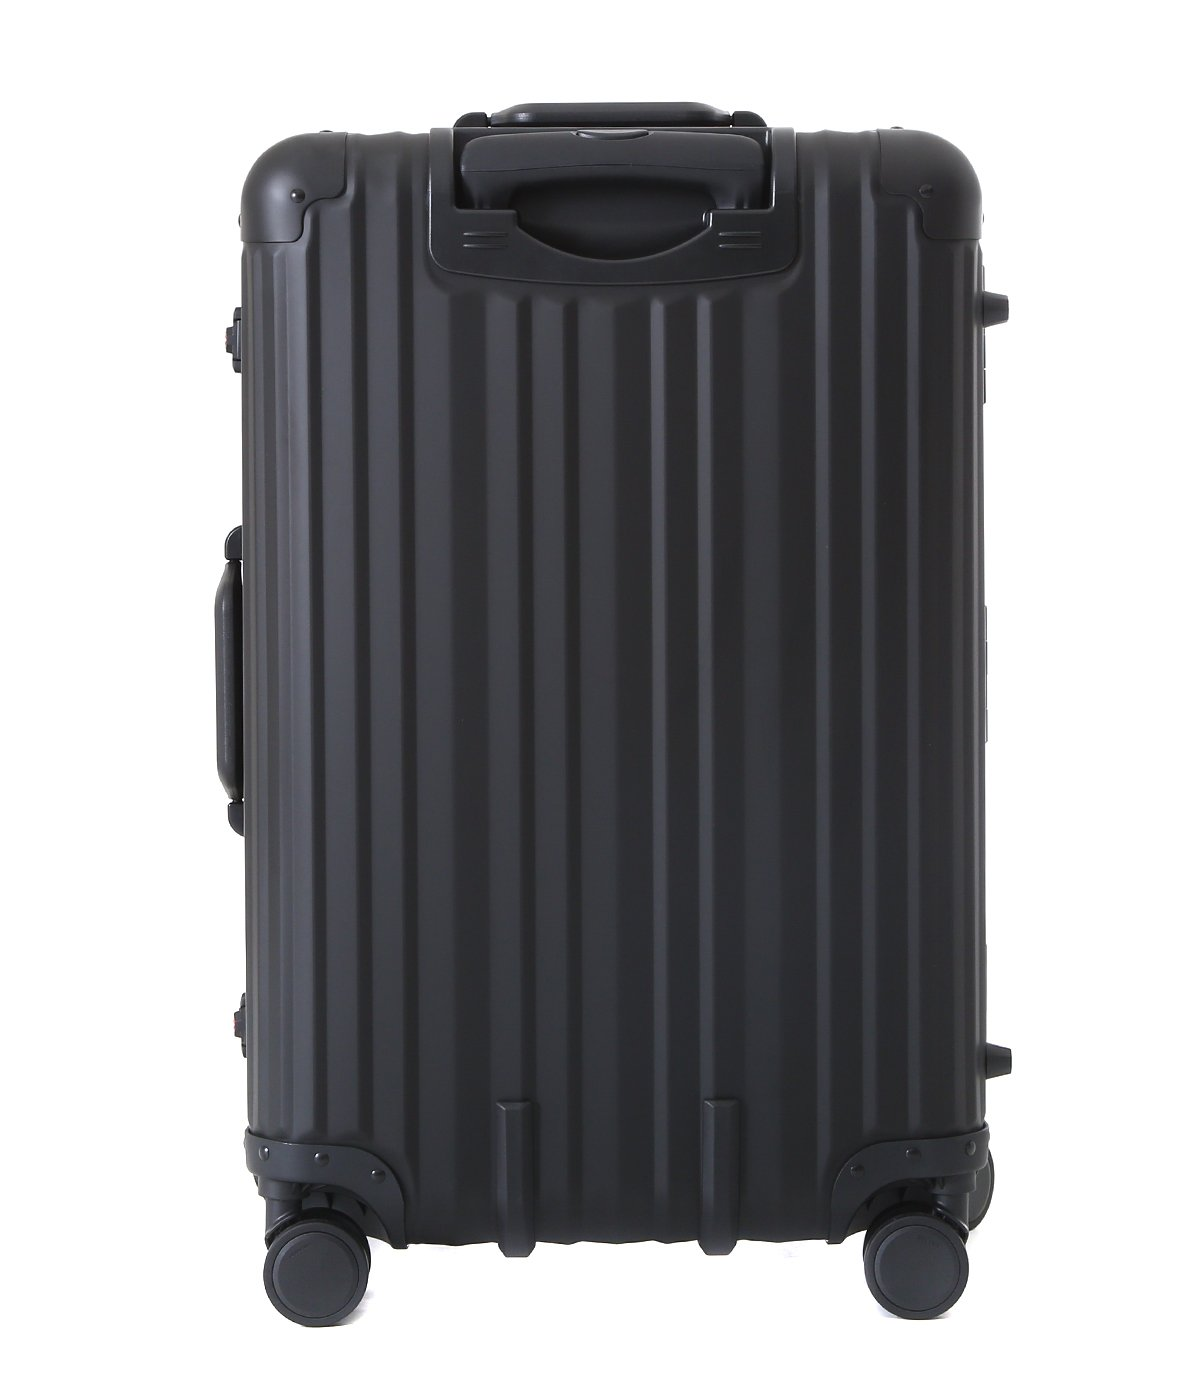 Aileron 24-inch Spinner Suitcase